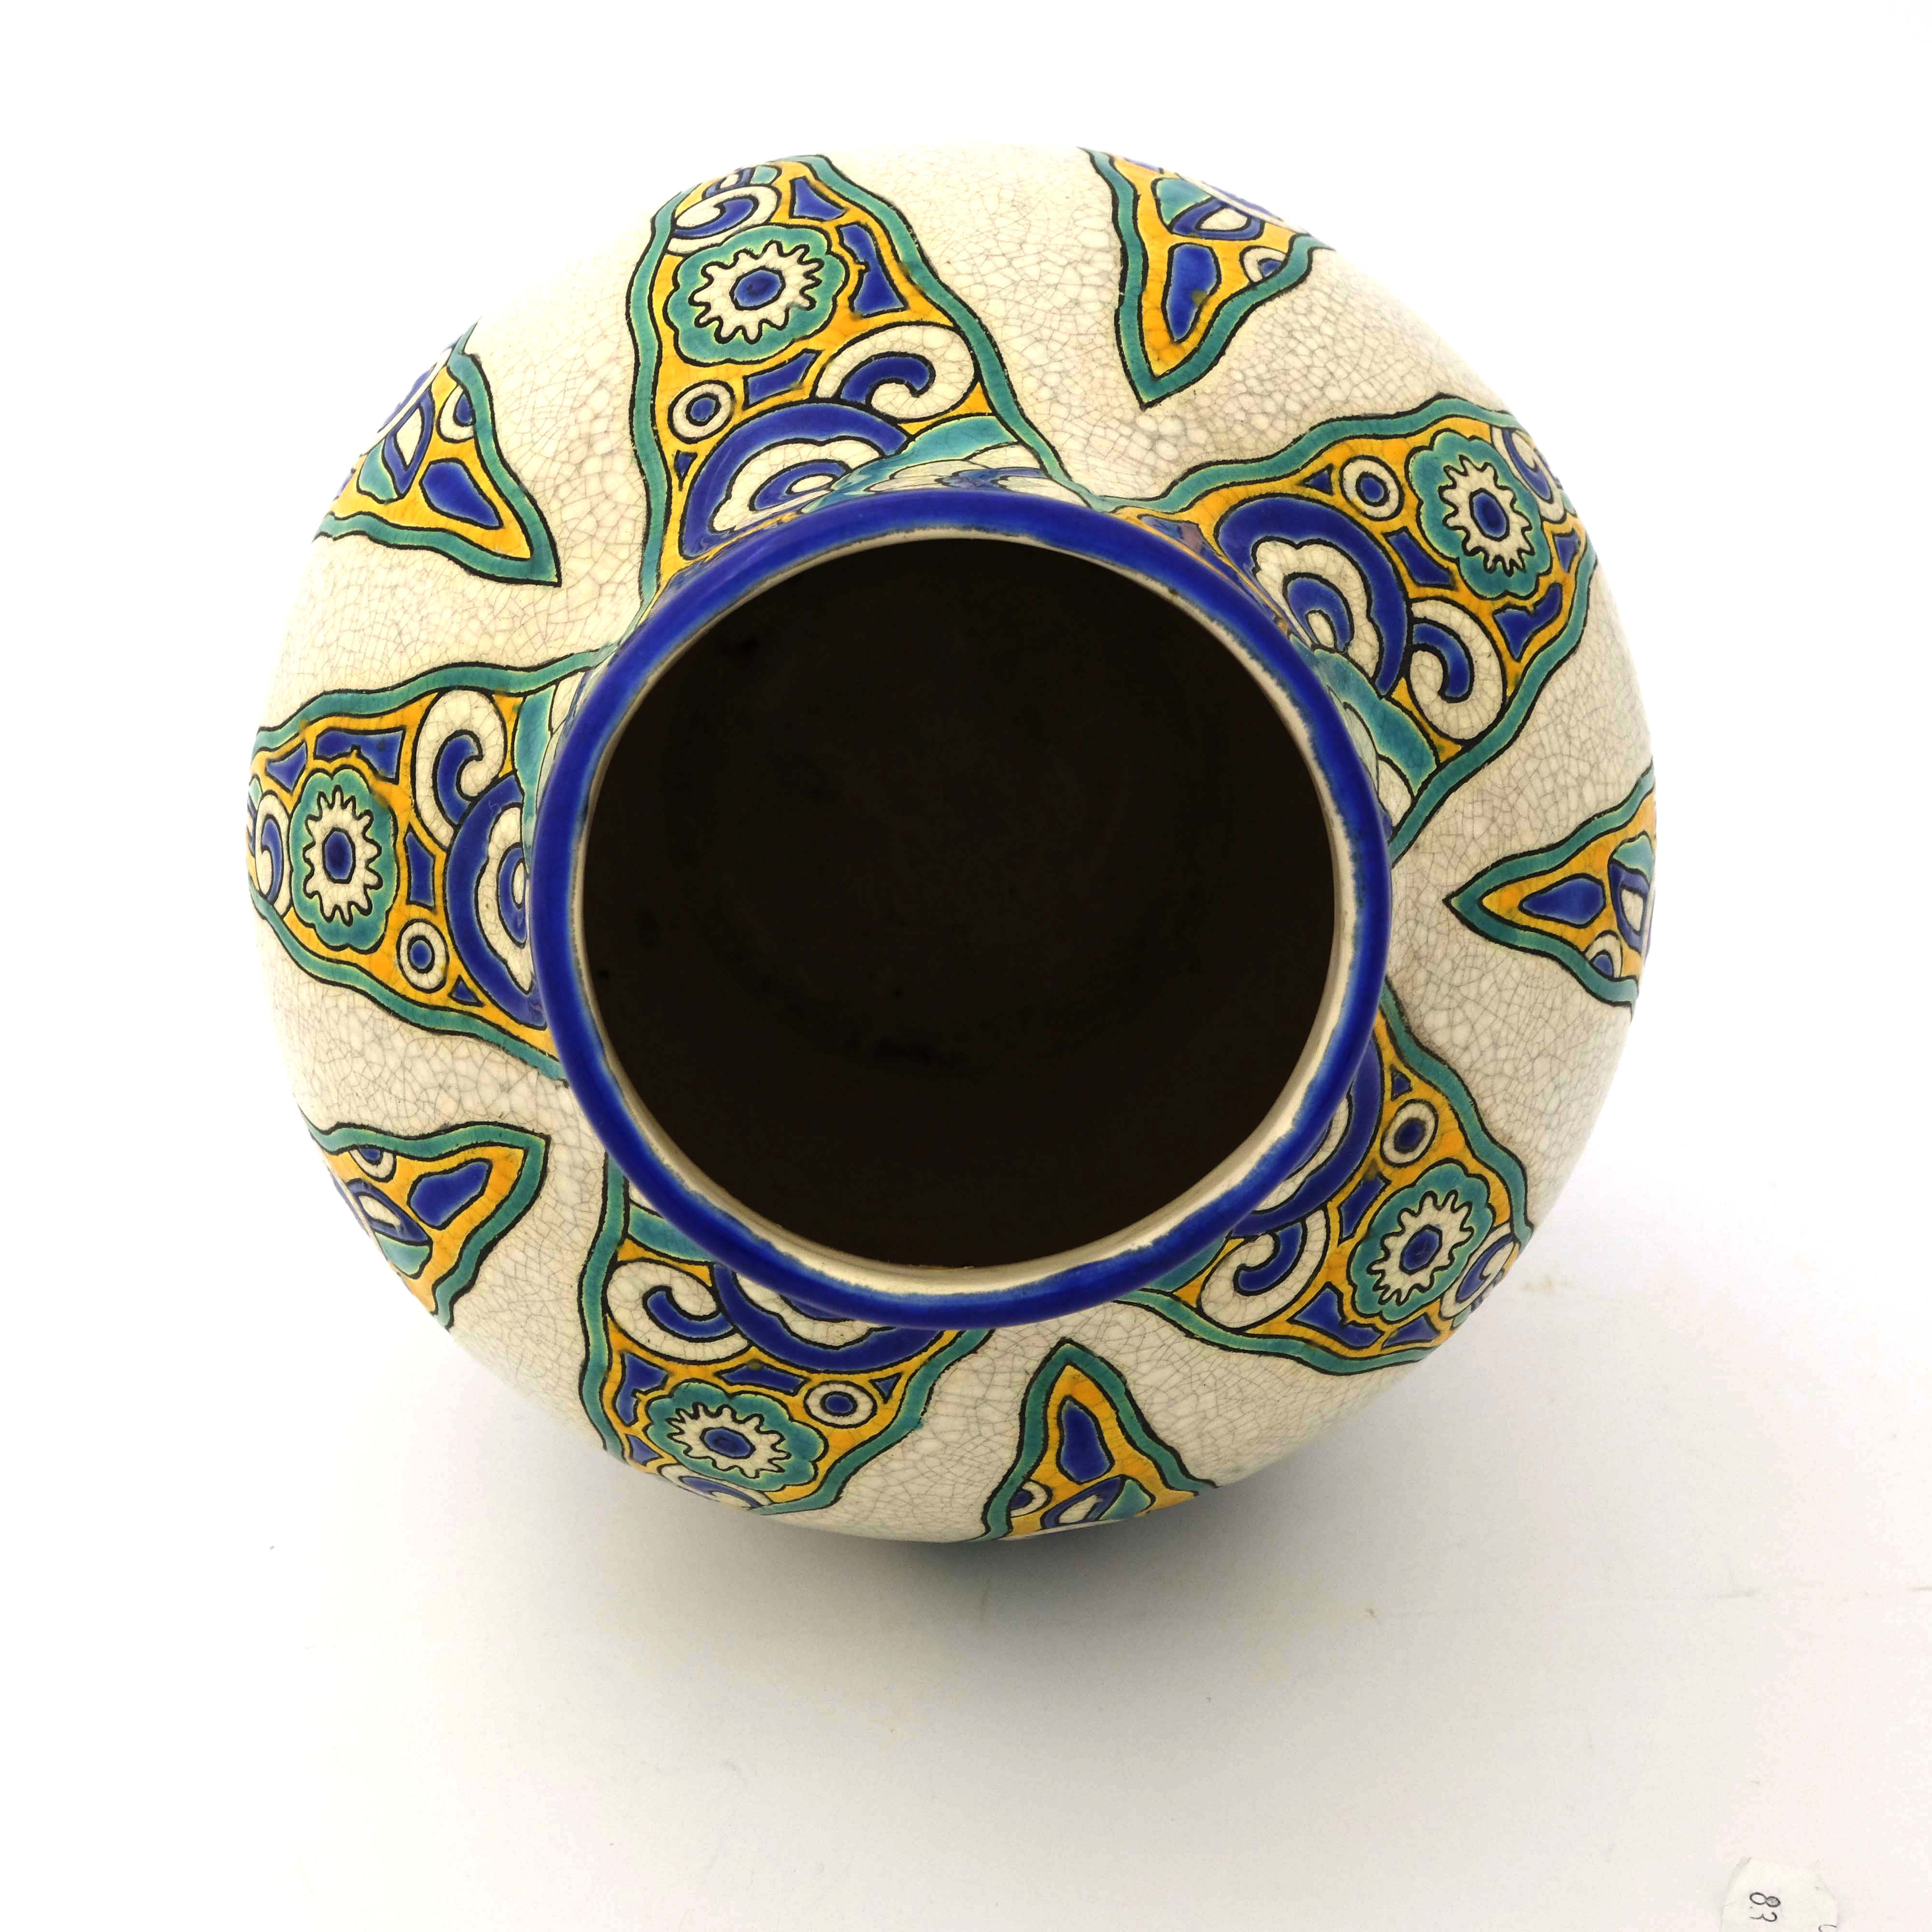 Charles Catteau for Boch Freres, an Art Deco vase - Image 4 of 5